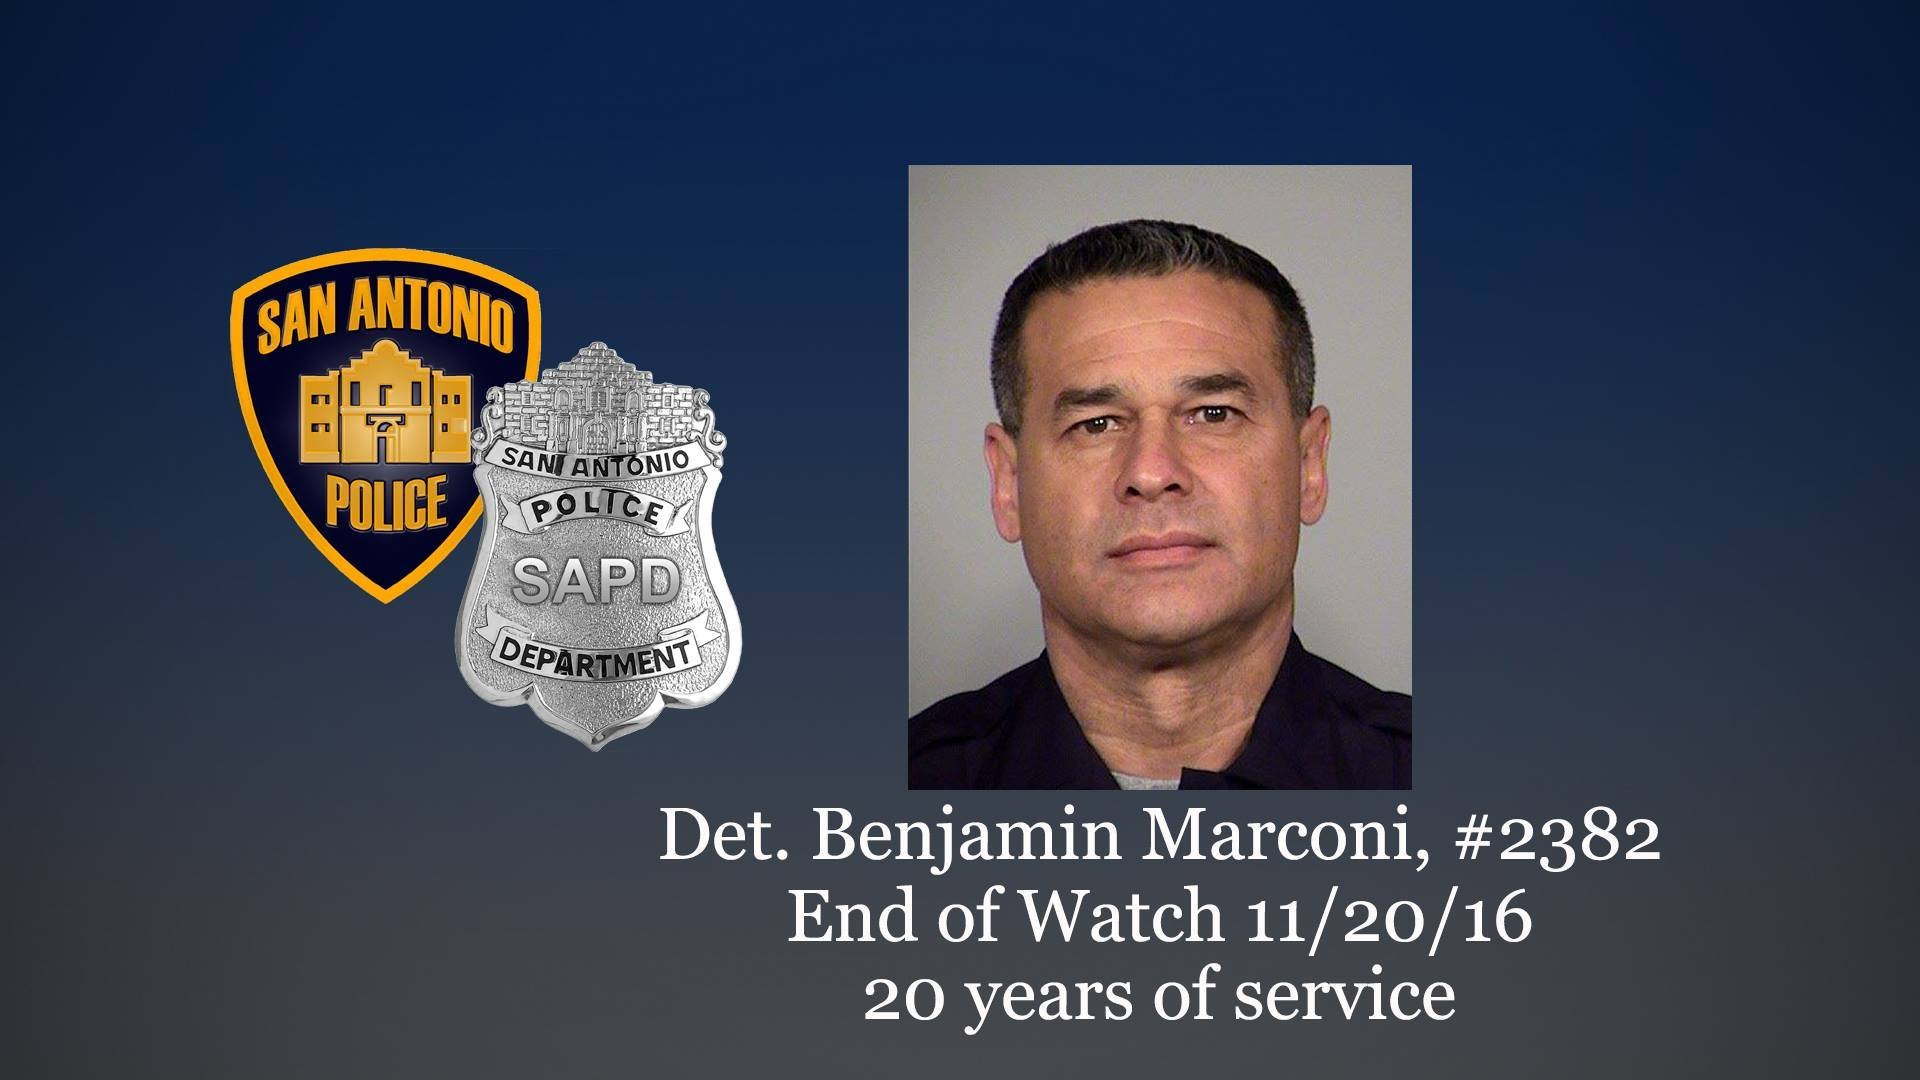 Investigators in San Antonio, Texas, are continuing their search for a gunman who they say killed officer detective Ben Marconi during a traffic stop on Sunday, November 20, 2016.  Pictured is 50-year-old Det. Benjamin Marconi.